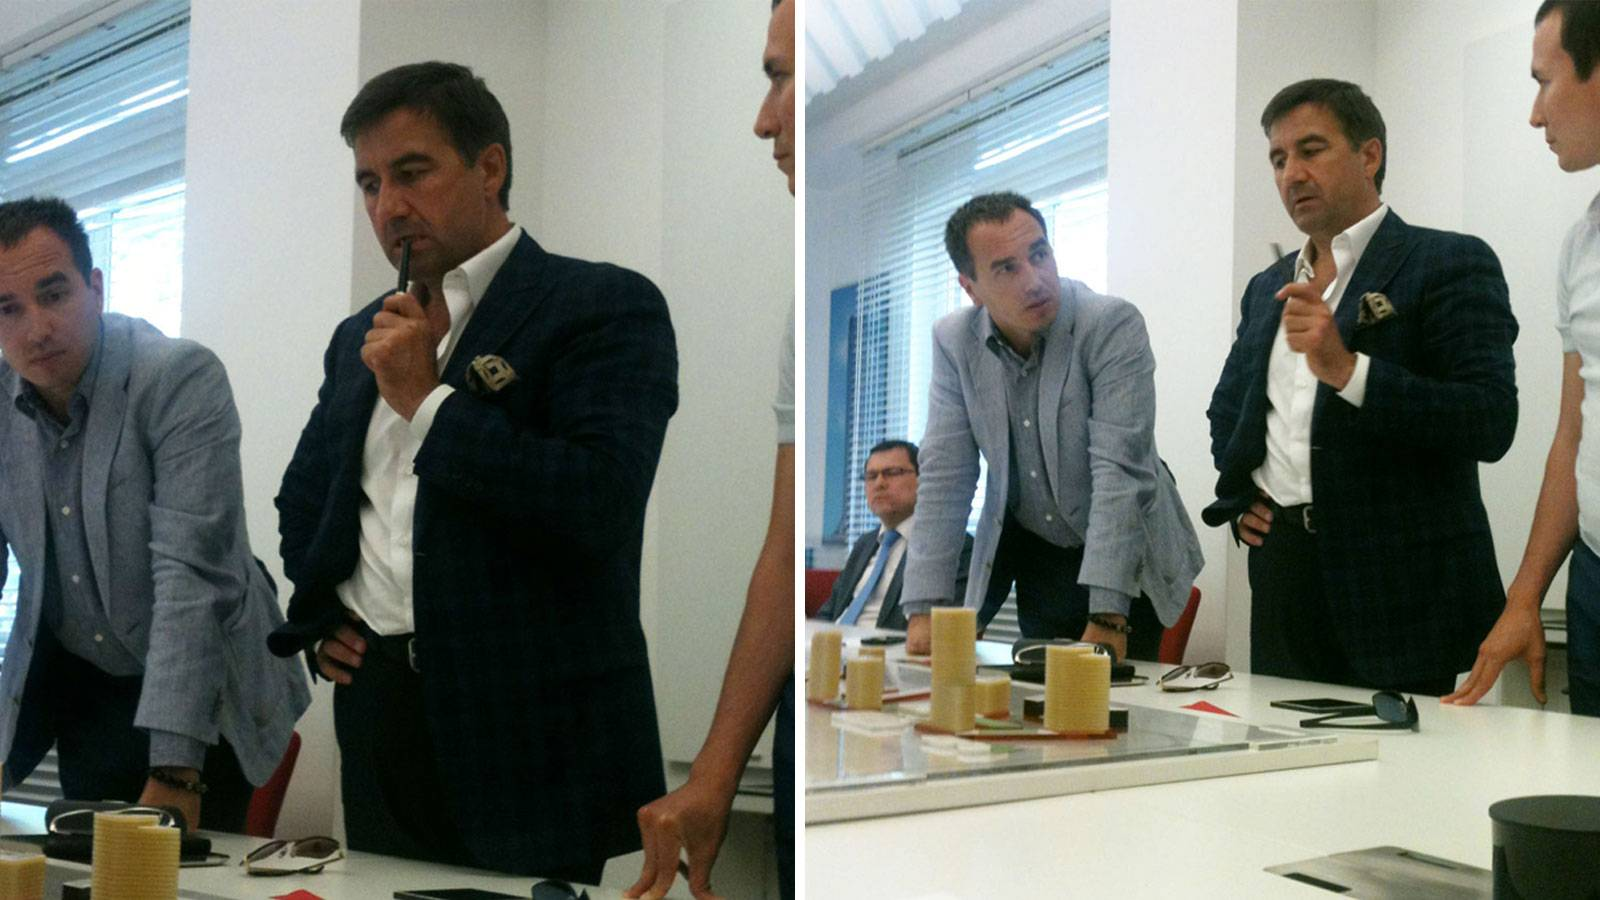 24.06.2013 Chelny Mix Master Plan has been presented to Governor of Chelny and investors.